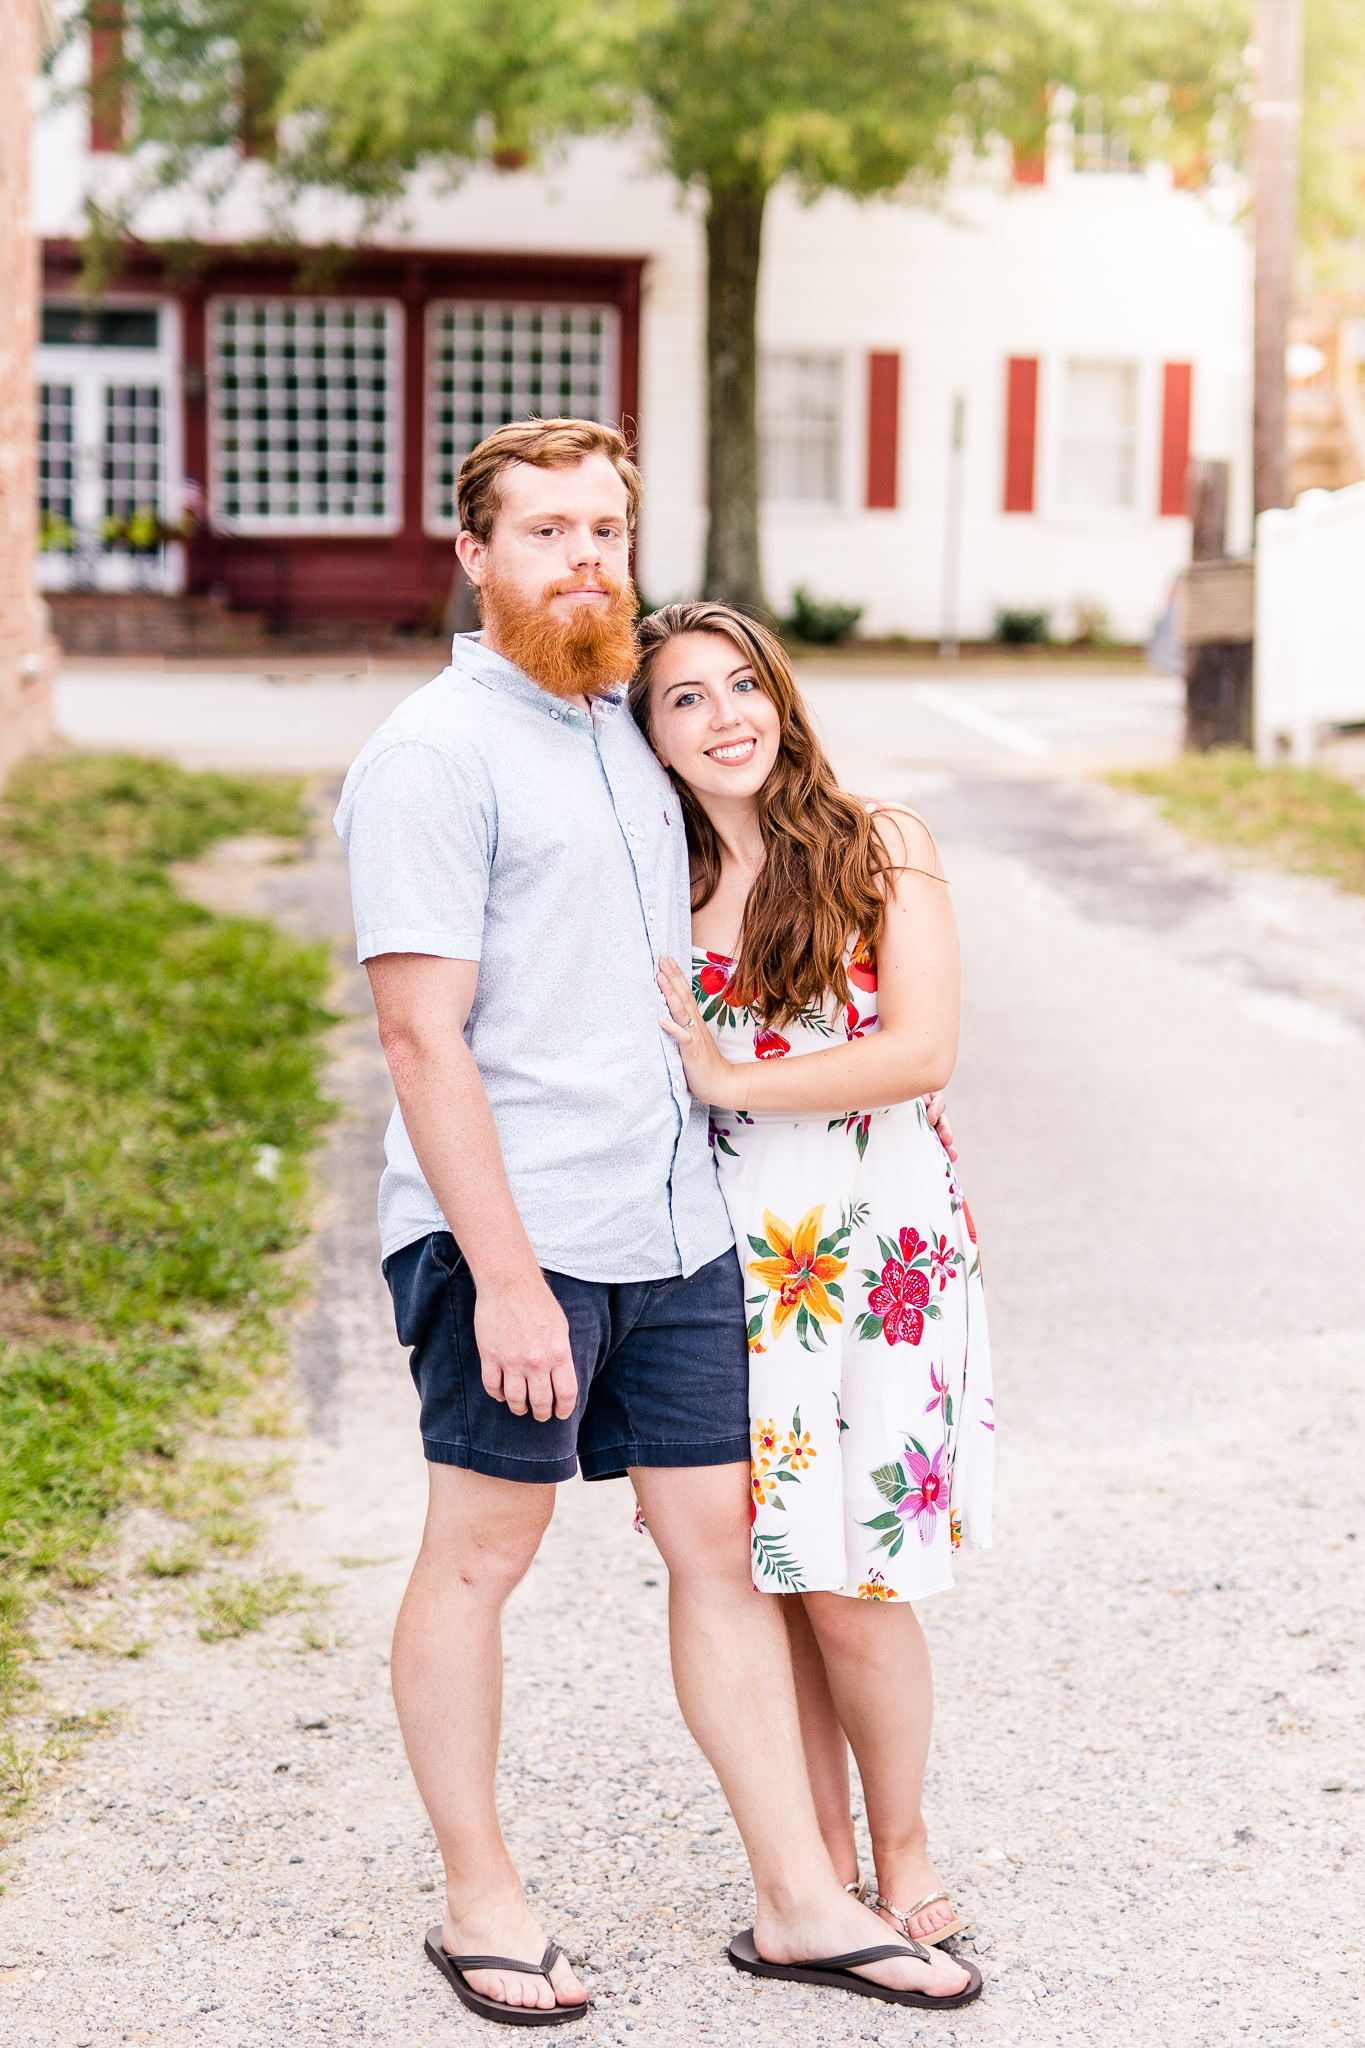 An engaged couple pose together during their summer sunset engagement session in Historic Occoquan, Northern Virginia